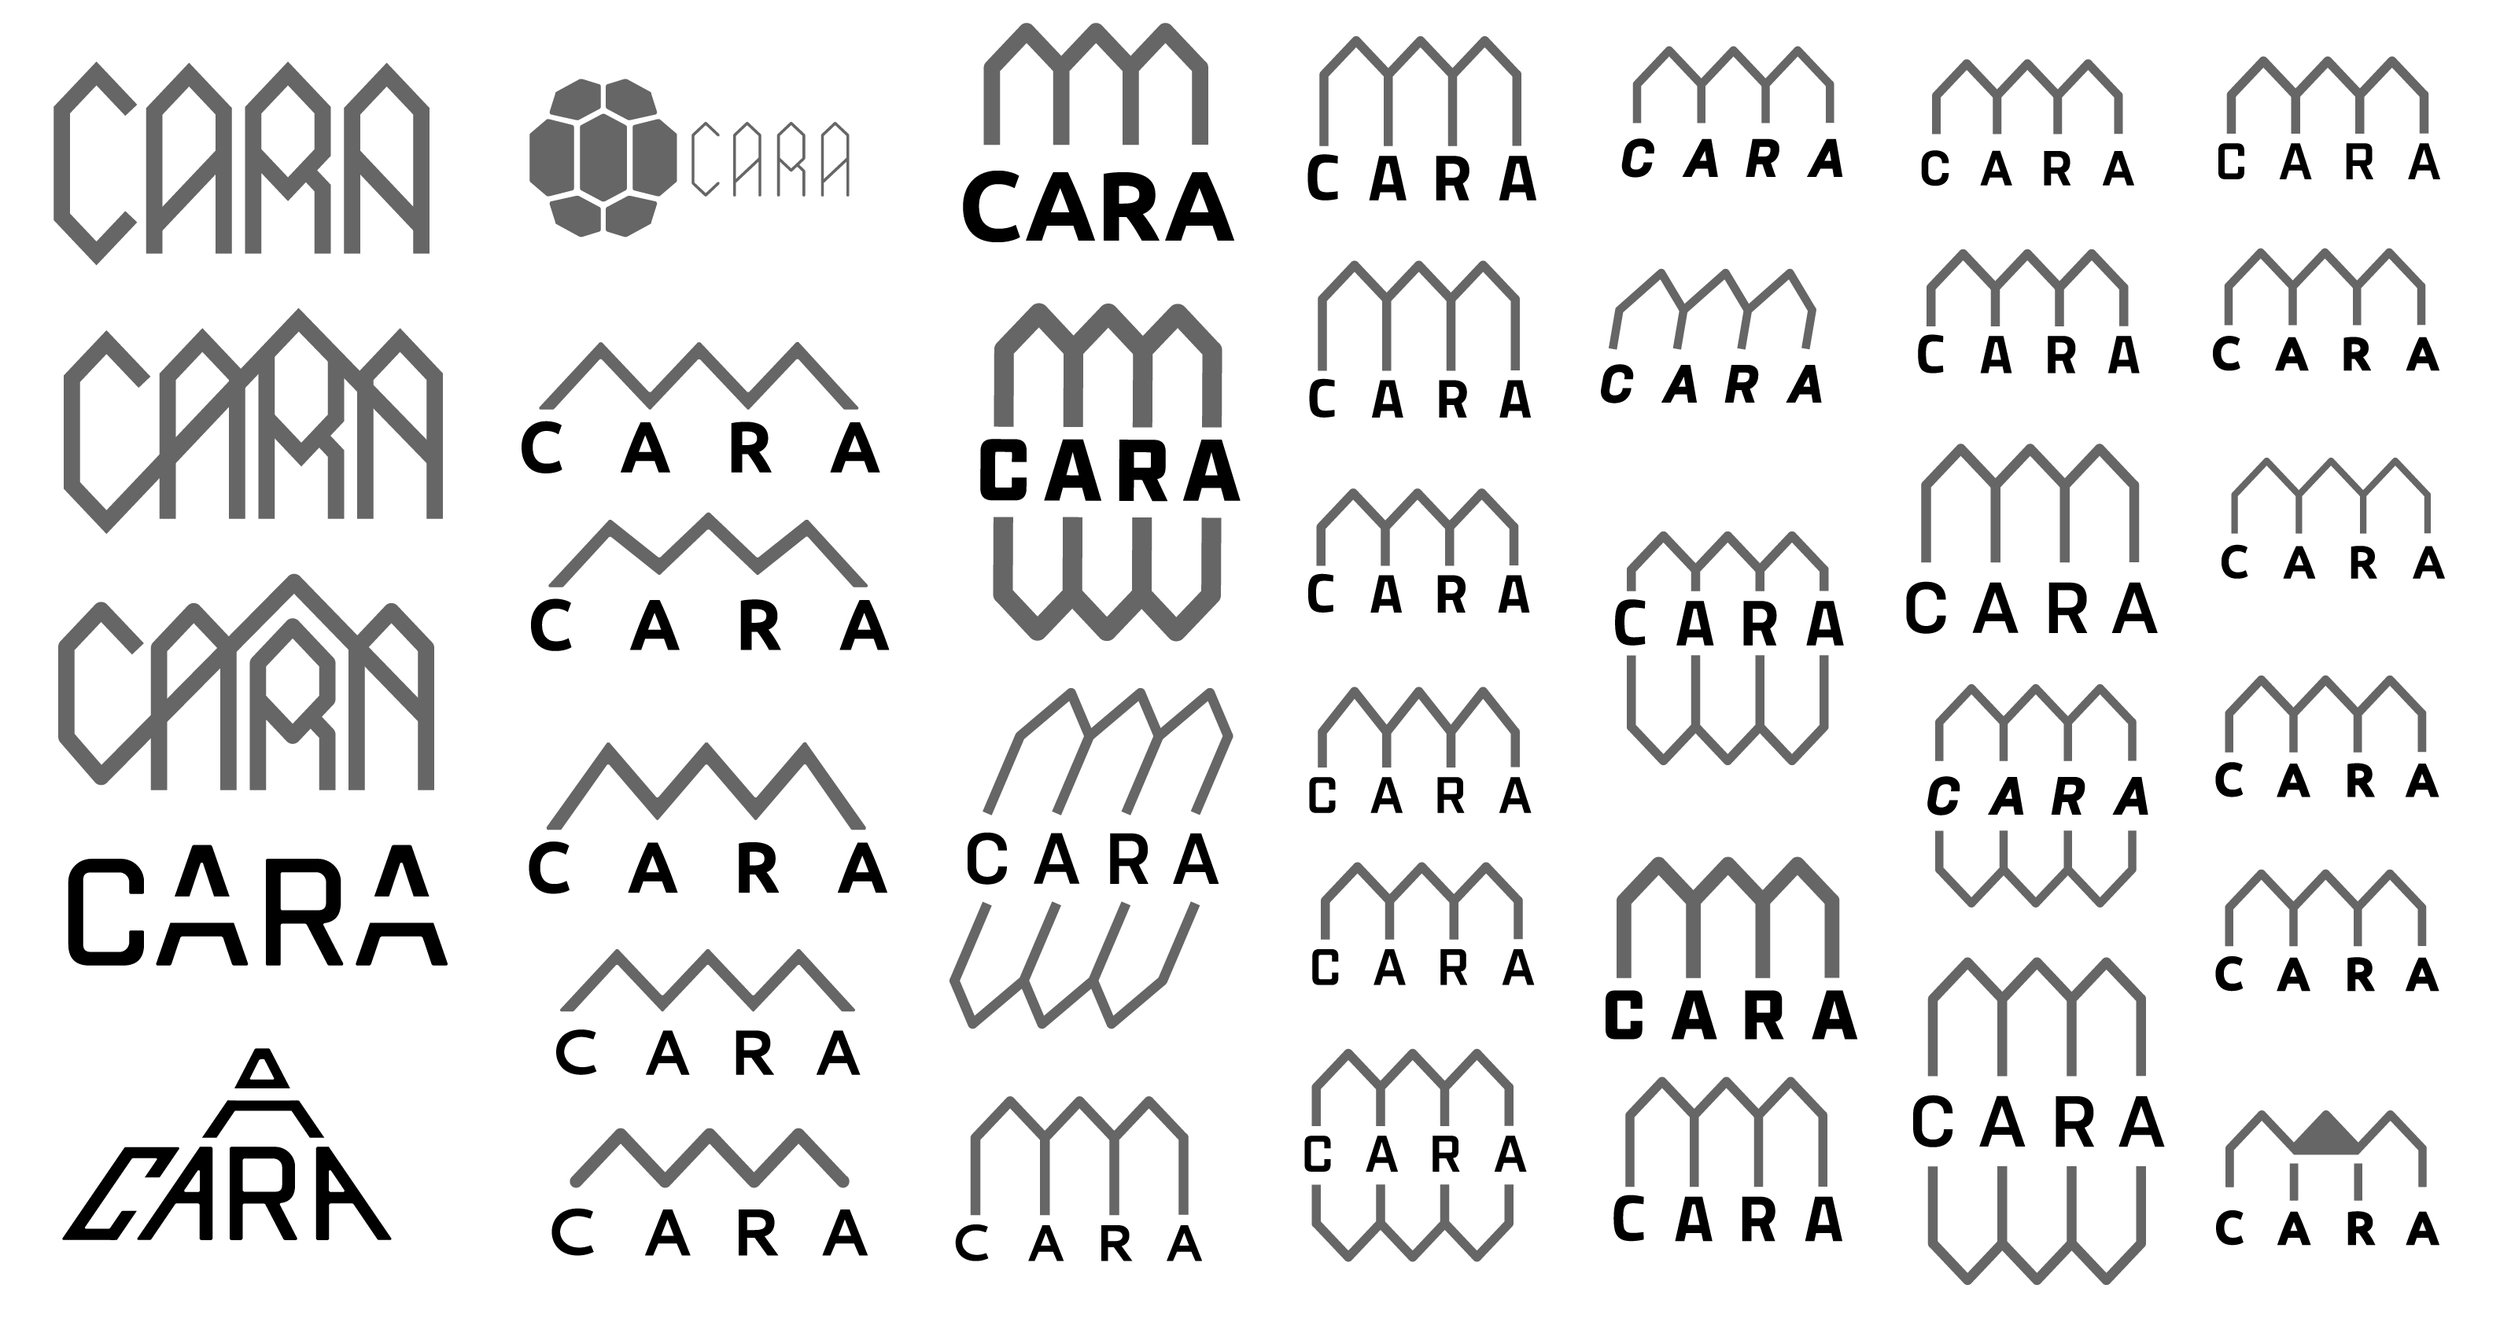 CARA_LOGO_PROGRETION-10.jpg